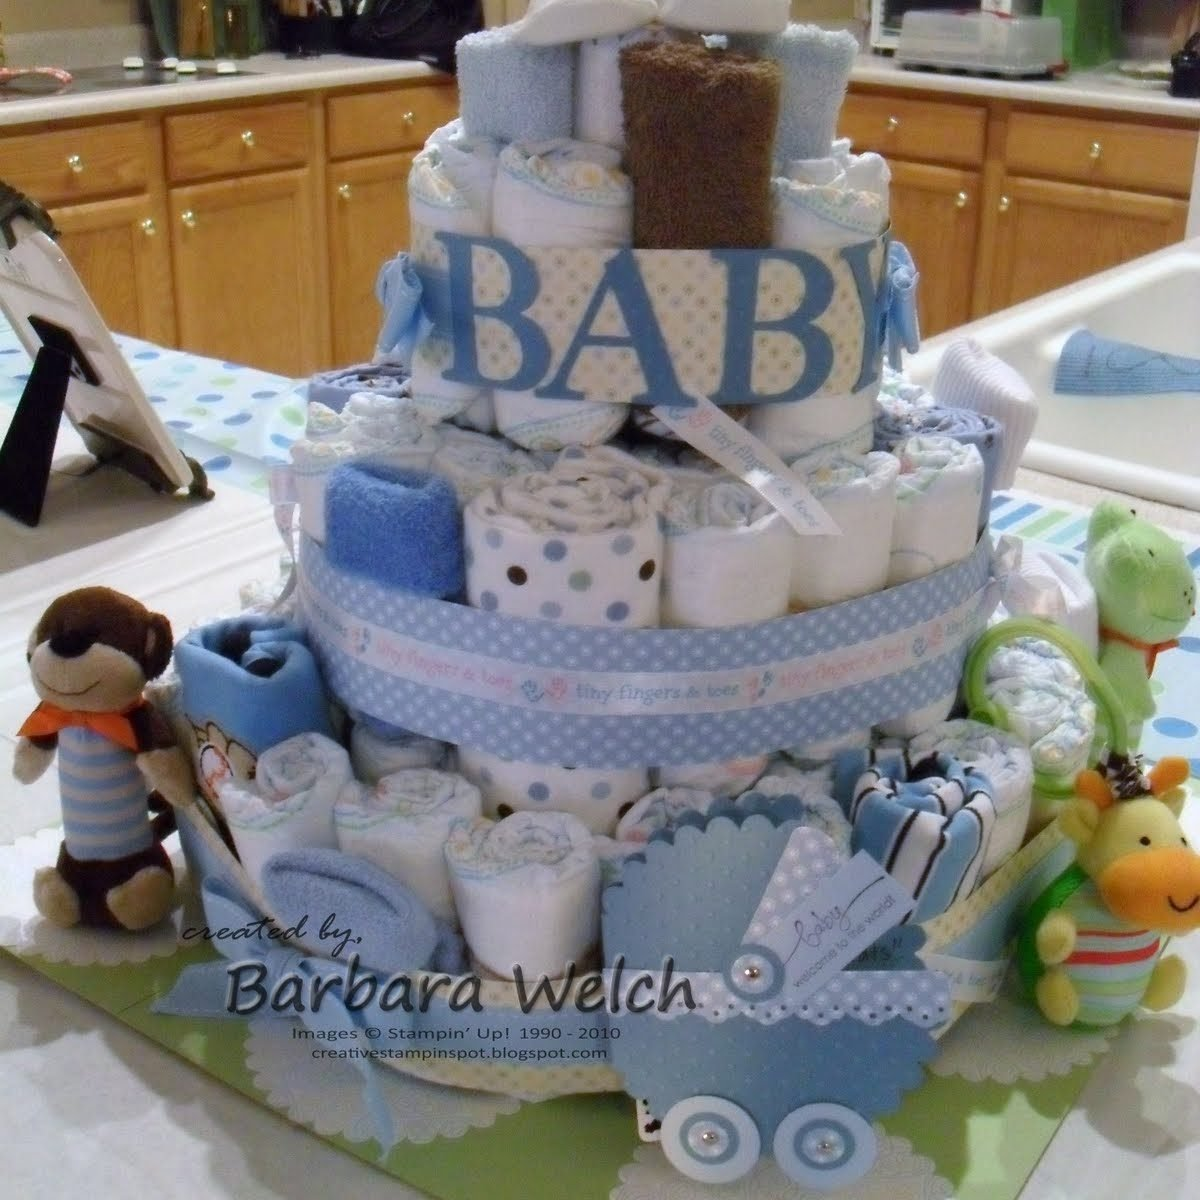 10 Cute Diaper Cake Ideas For Baby Boy fascinating baby shower diaper cake ideas boy 1st made interesting